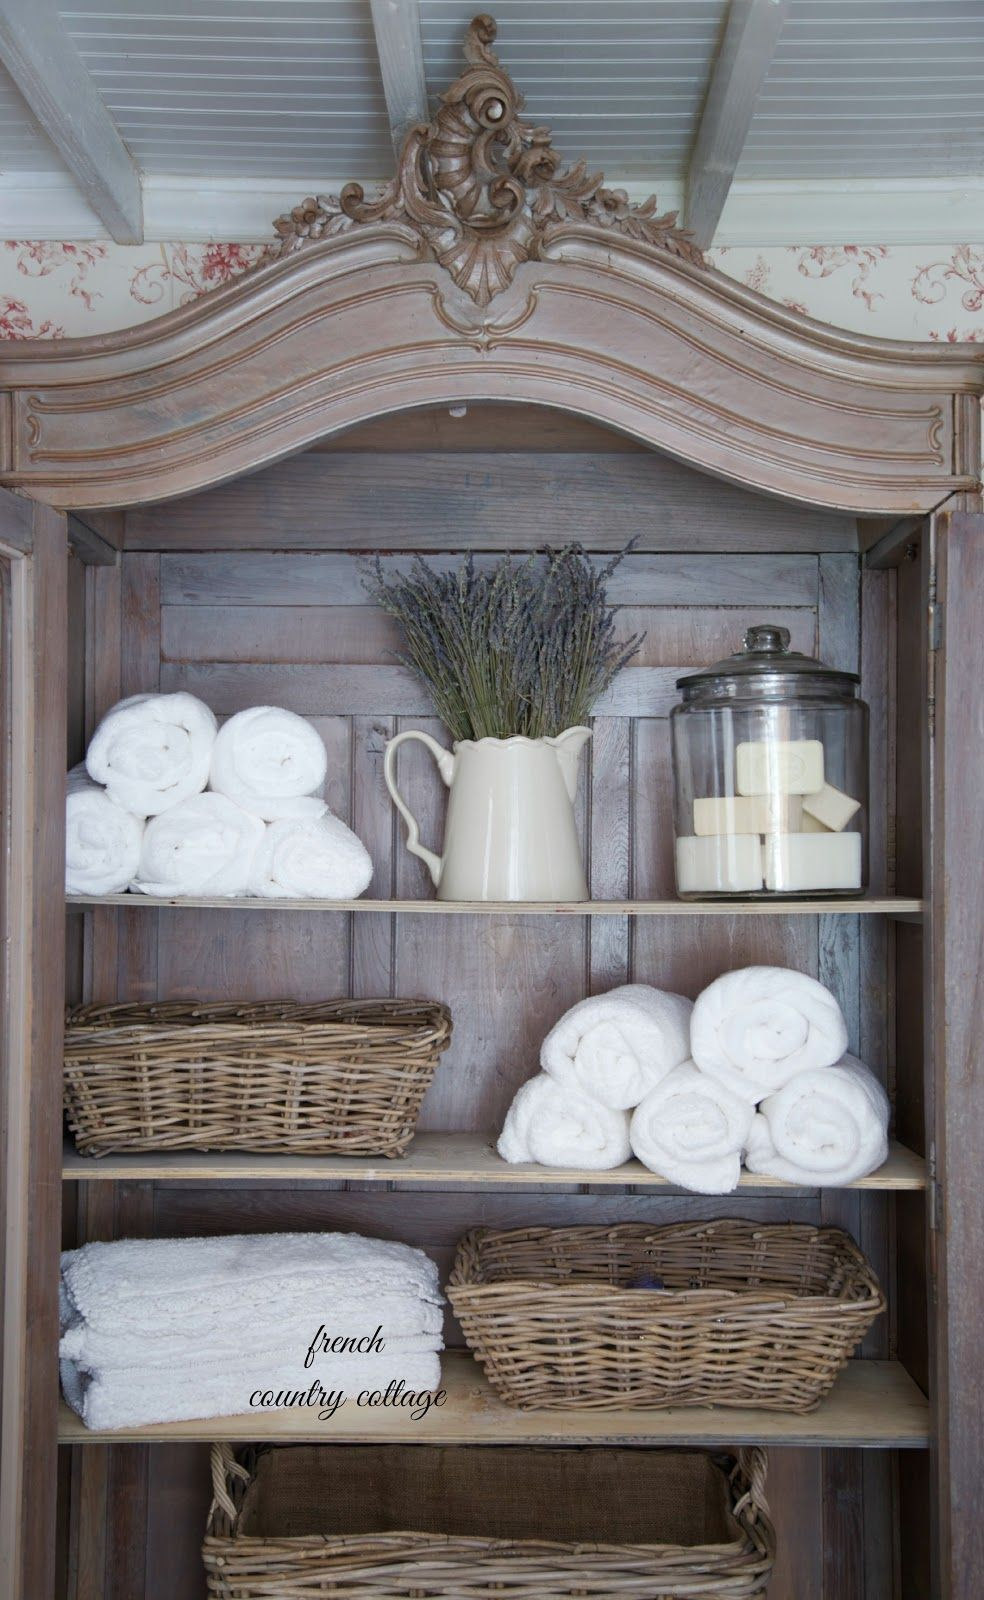 Scandinavian Farmhouse French Country Cottage Crushing On Baskets Bathroom Ideas